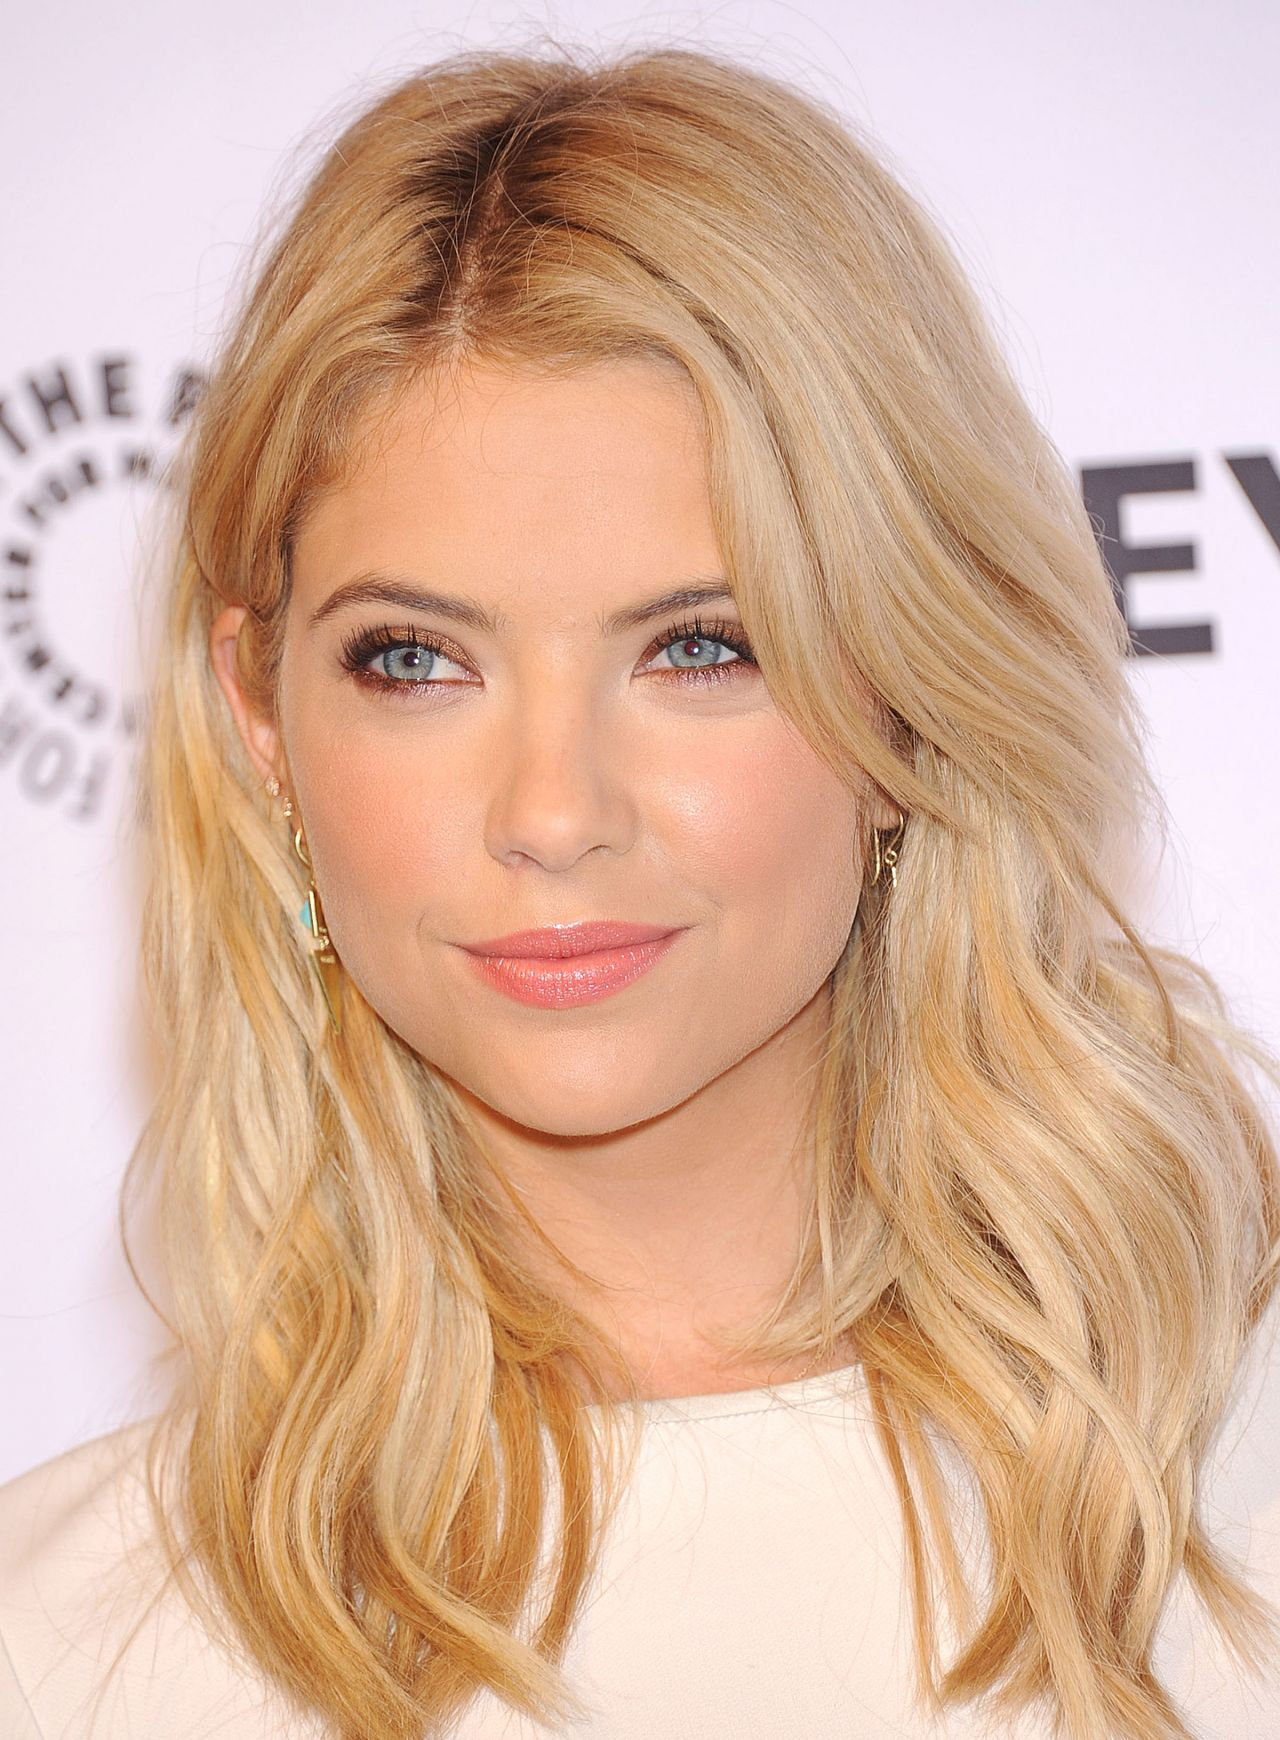 Ashley Benson - Pretty Little Liars at PaleyFest 2014